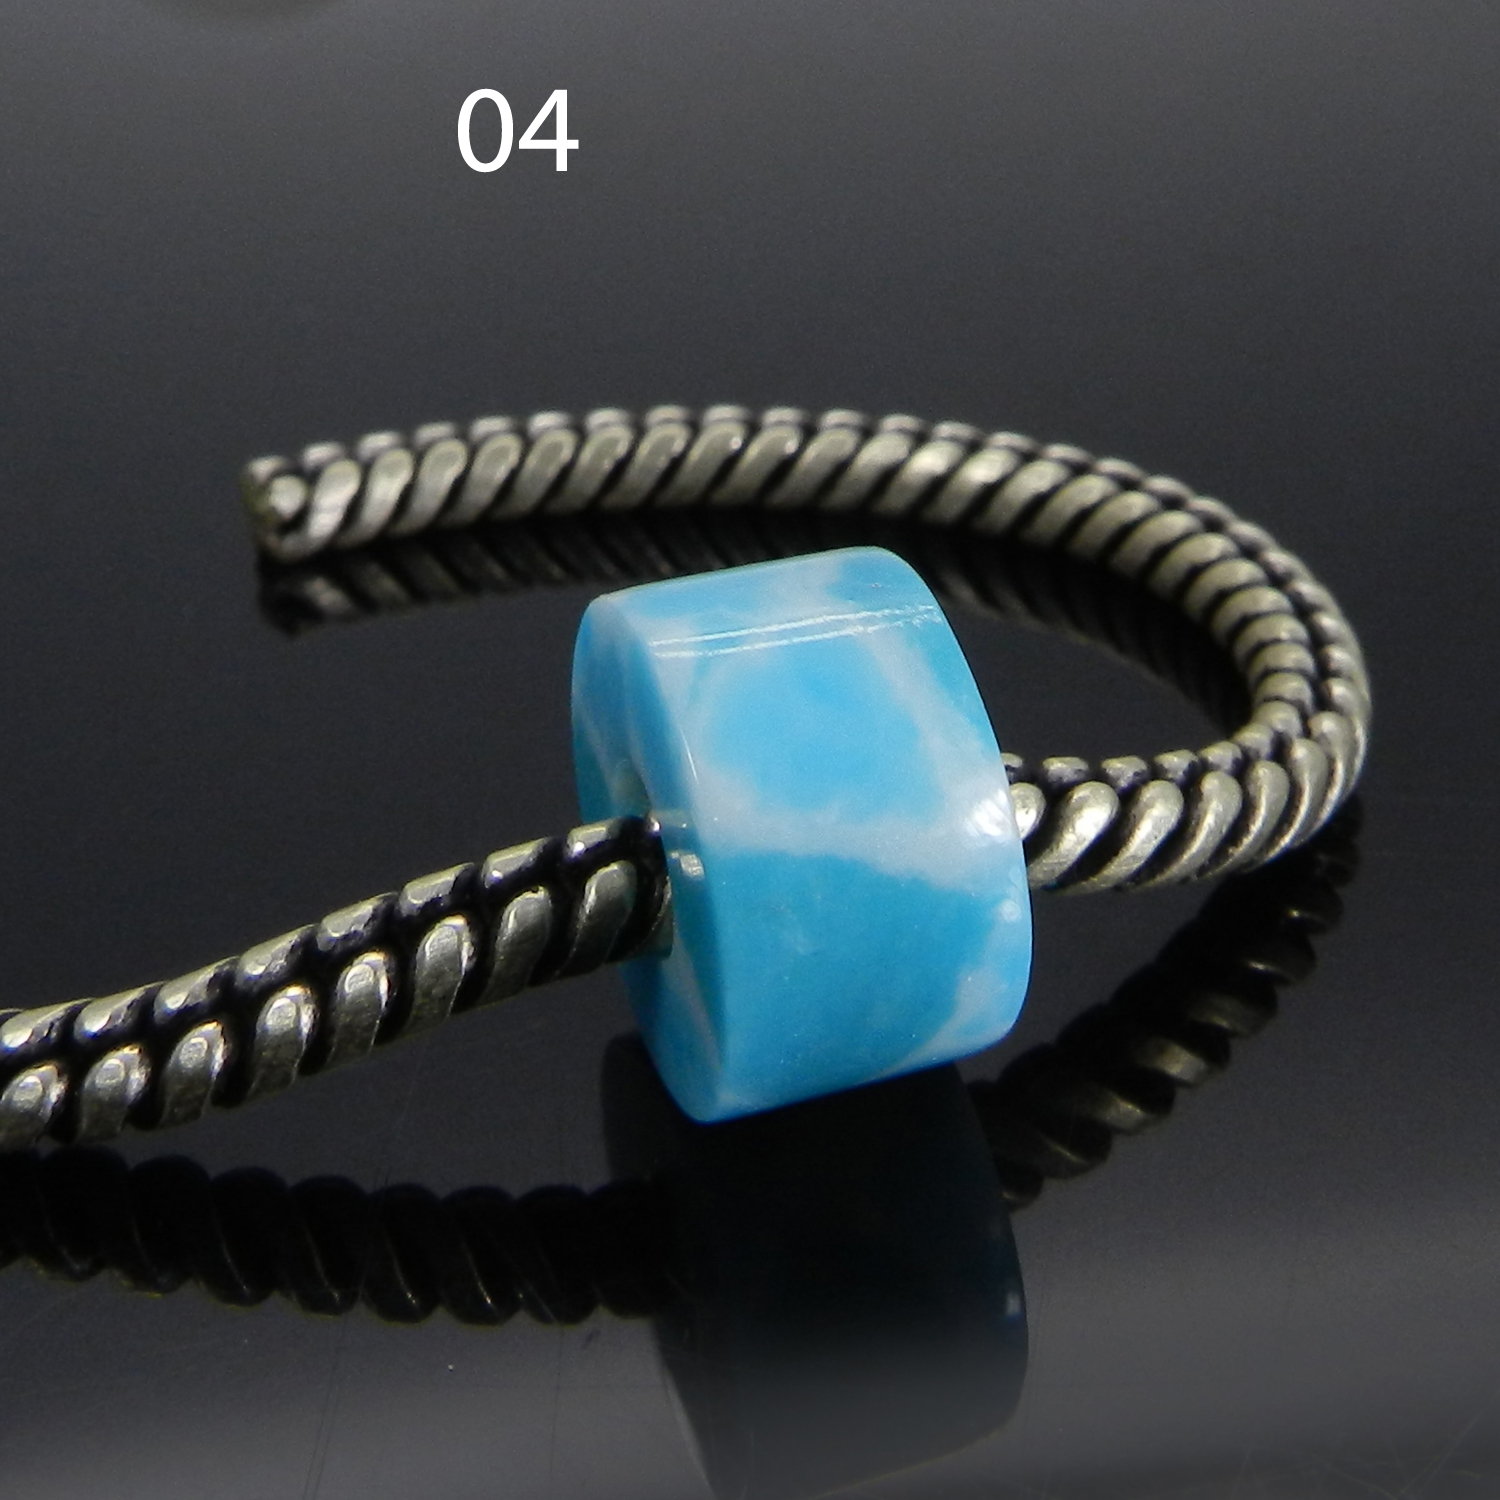 Synthetic Larimar 14x8x5mm Round Flat Beads